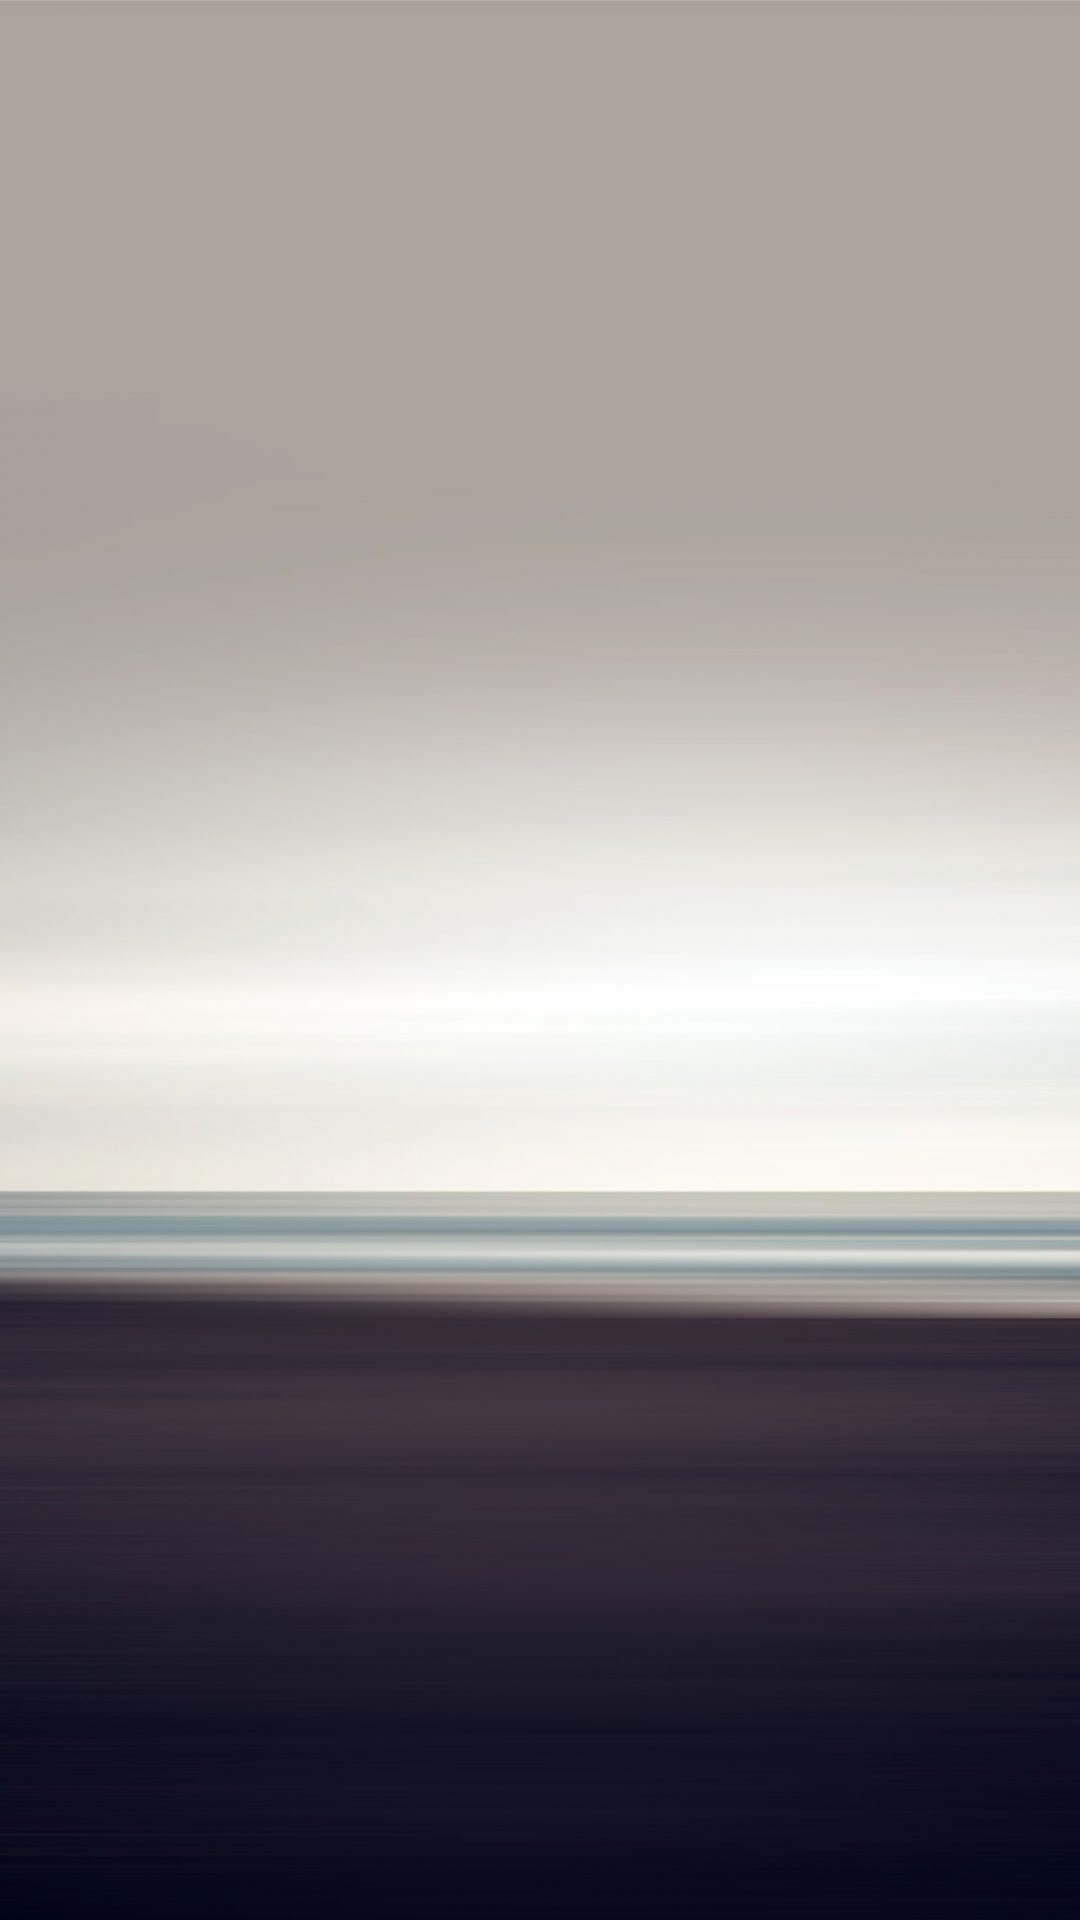 Motion Horizontal Line Abstract Pattern